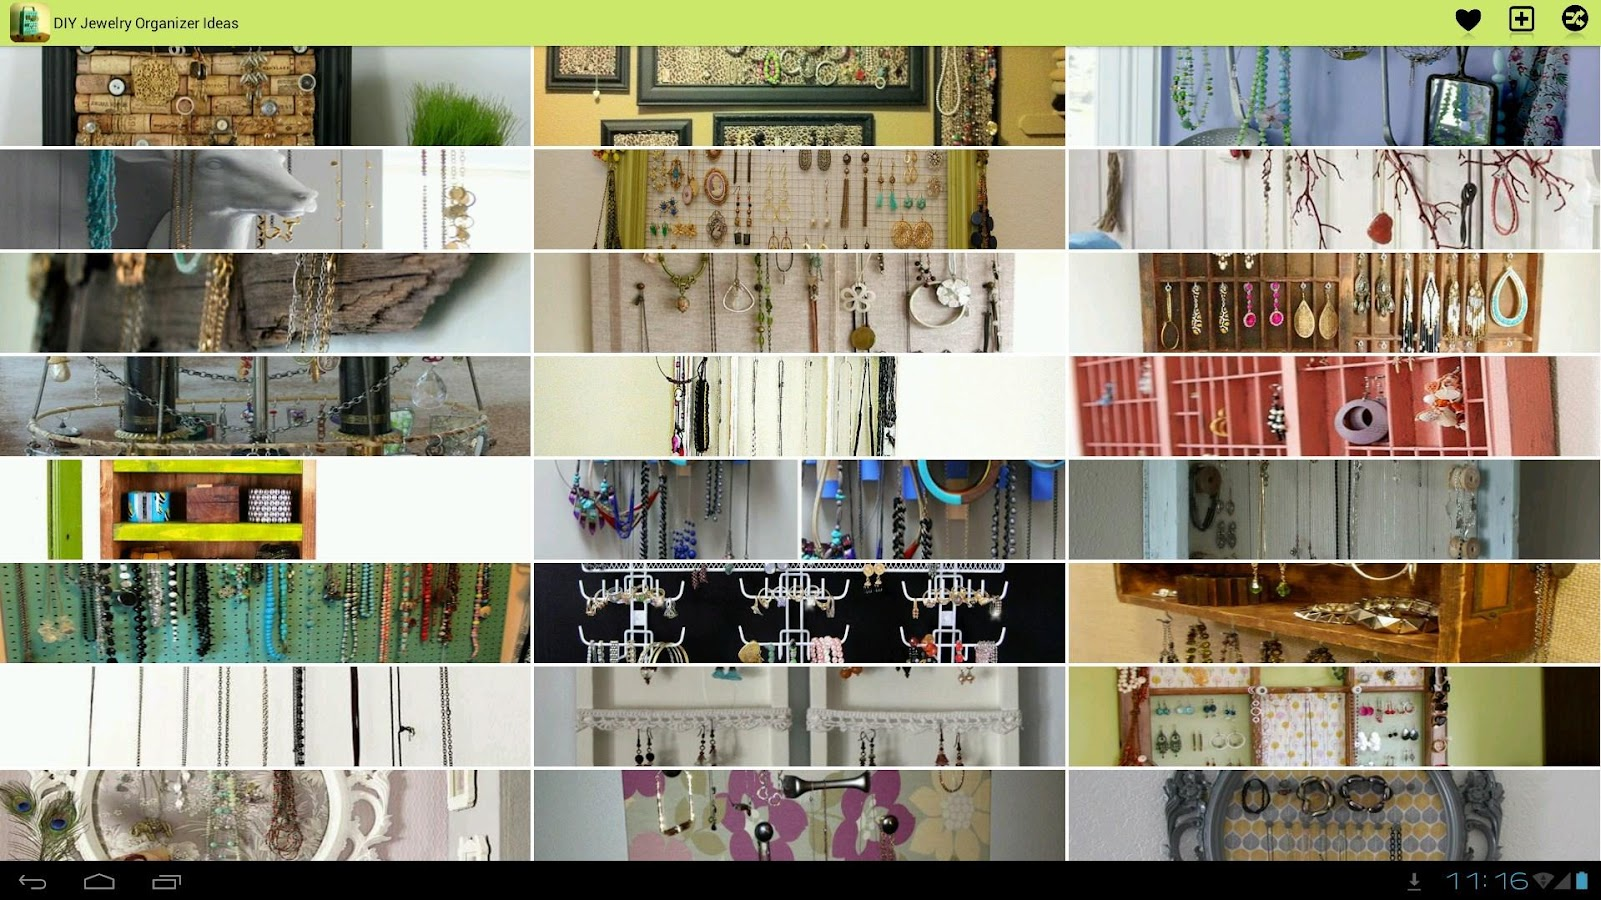 Bracelet Organizer Ideas Diy Jewelry Organizer Ideas Android Apps On Google Play